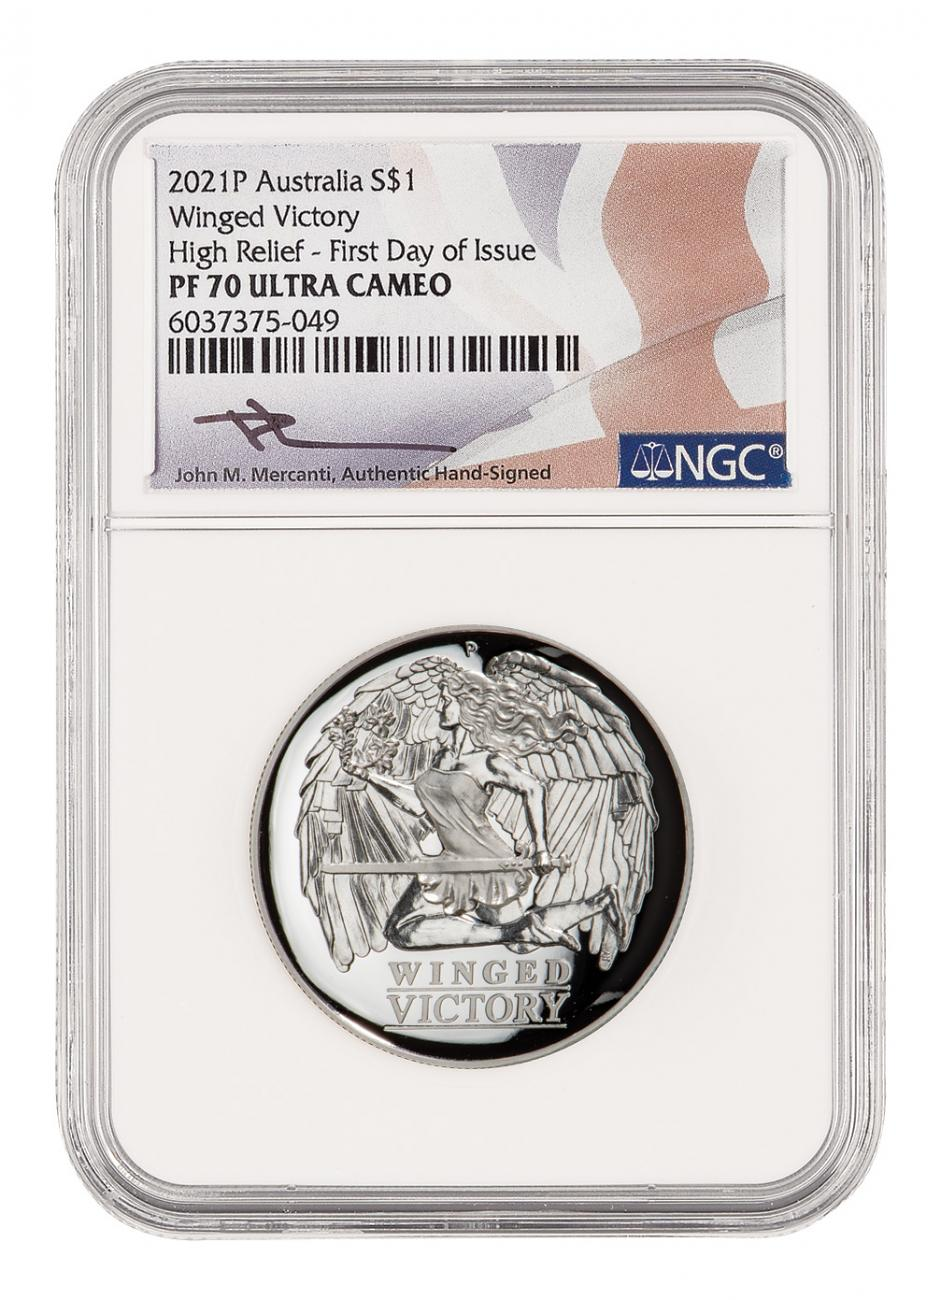 2021 Australia Winged Victory High Relief 1 oz Silver Proof $1 Coin Scarce and Unique Coin Division NGC PF70 UC FDI Mercanti Signed Flag Label